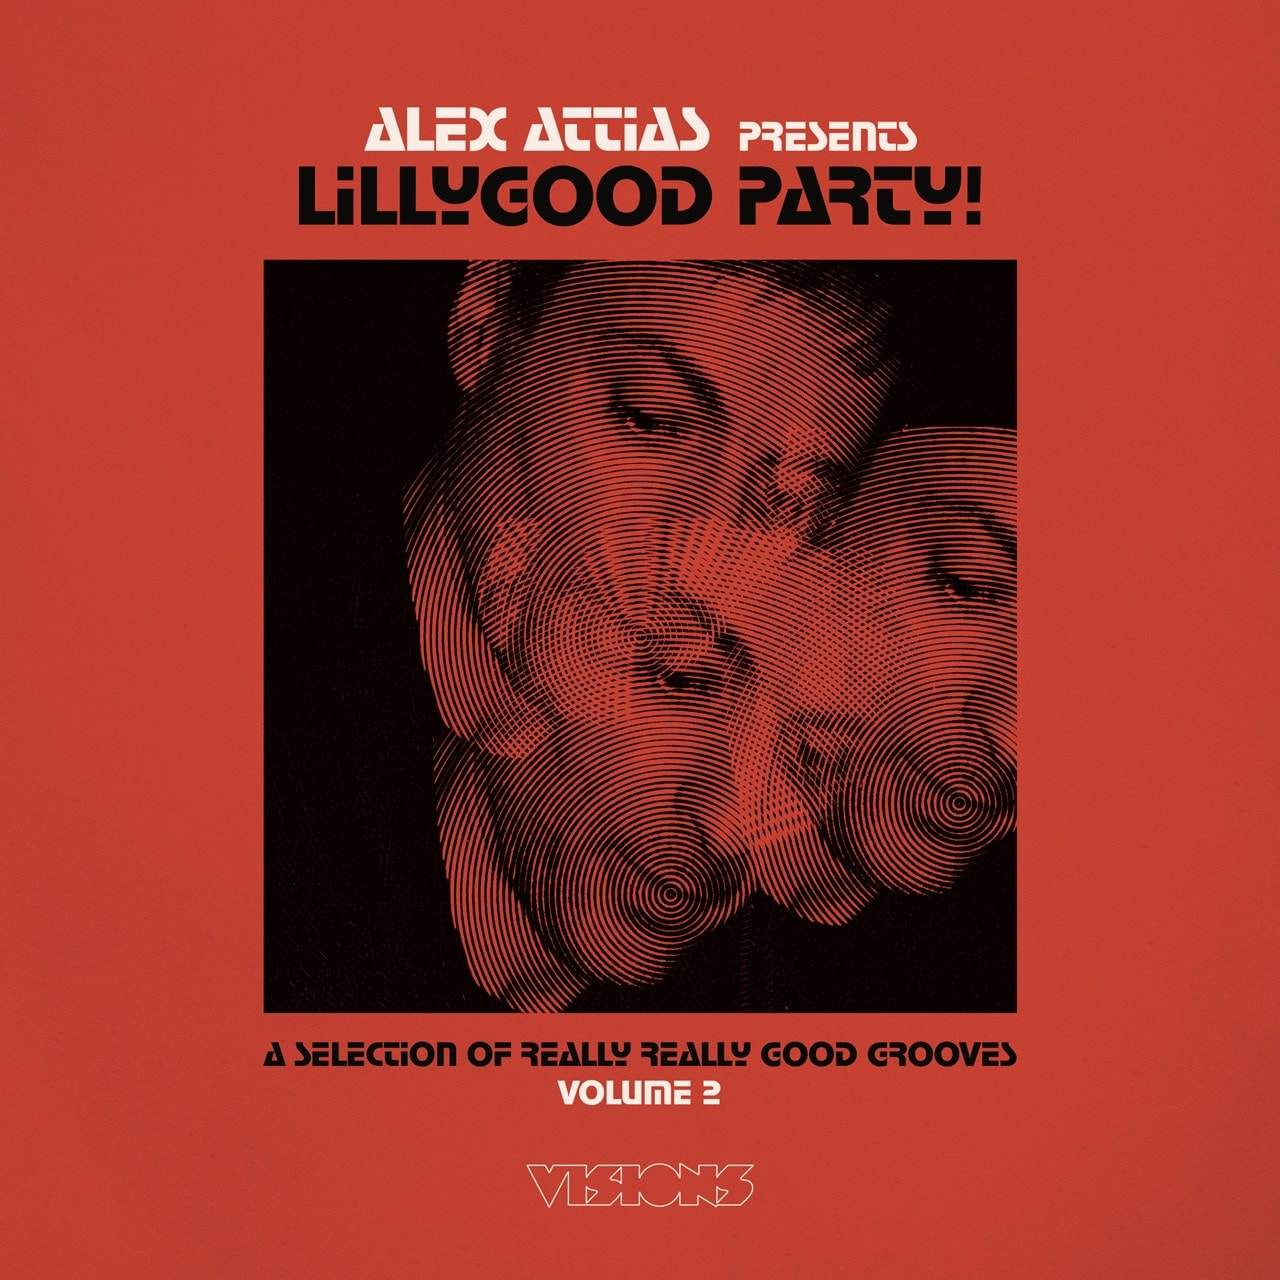 Alex Attias Presents: Lillygood Party!: A Selection of Really Really Good Grooves - Volume 2 - 1